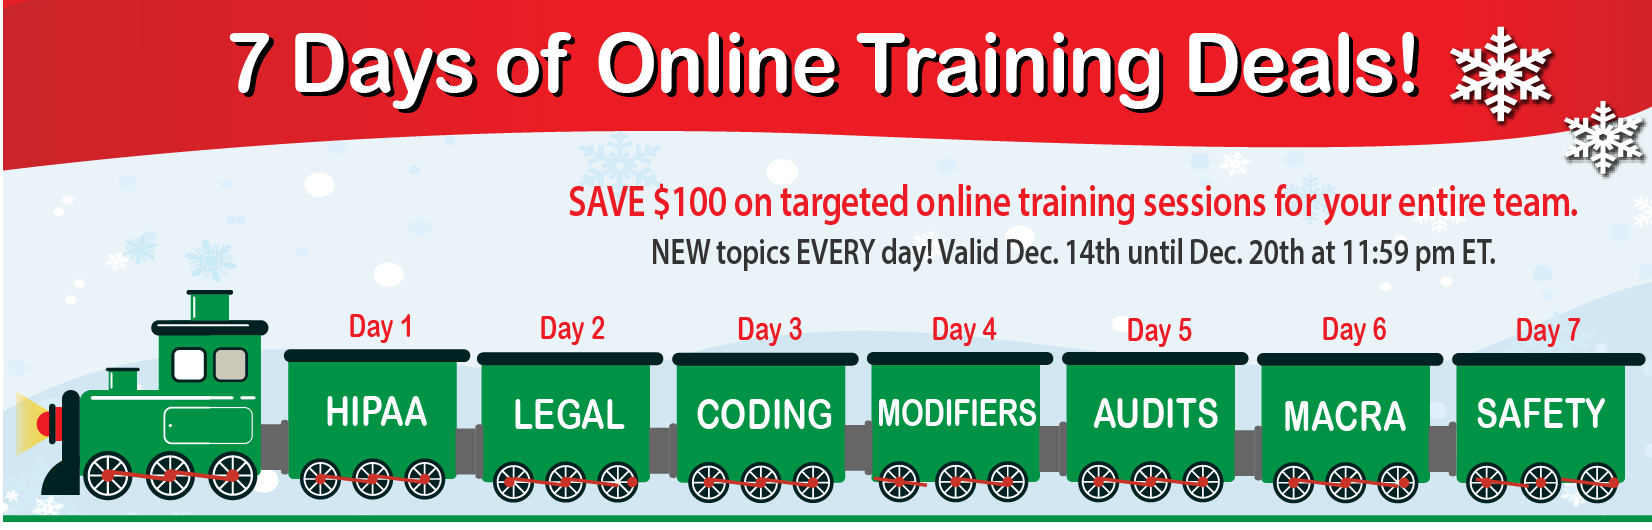 Save $100 Now on Top-Rated Online Training Sessions